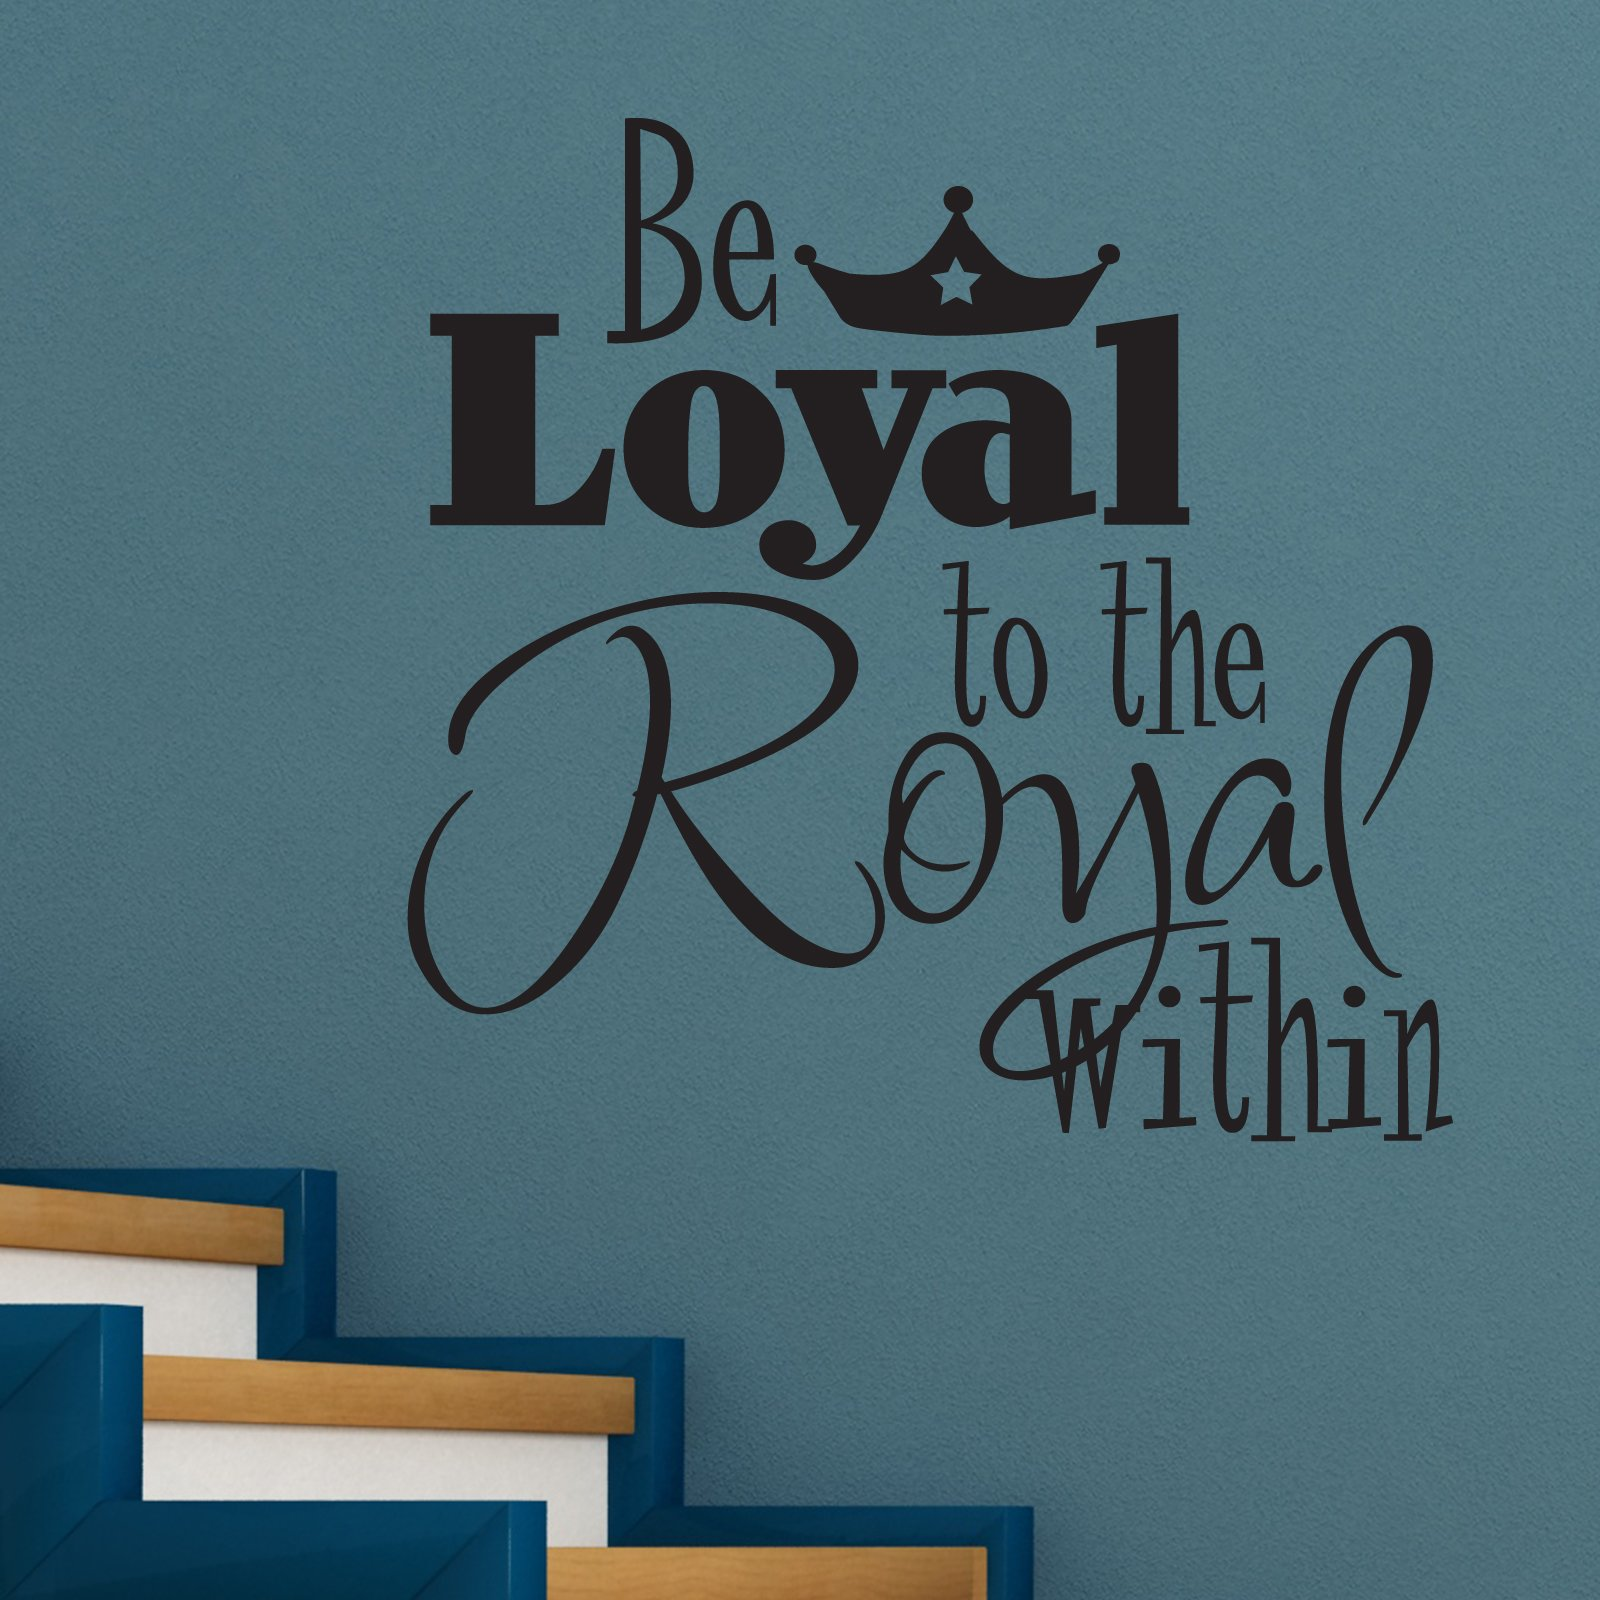 Designs quotes about loyalty quotes about loyalty quotes about loyalty - Be Loyal To The Royal Within Quote Wall Sticker Decal A